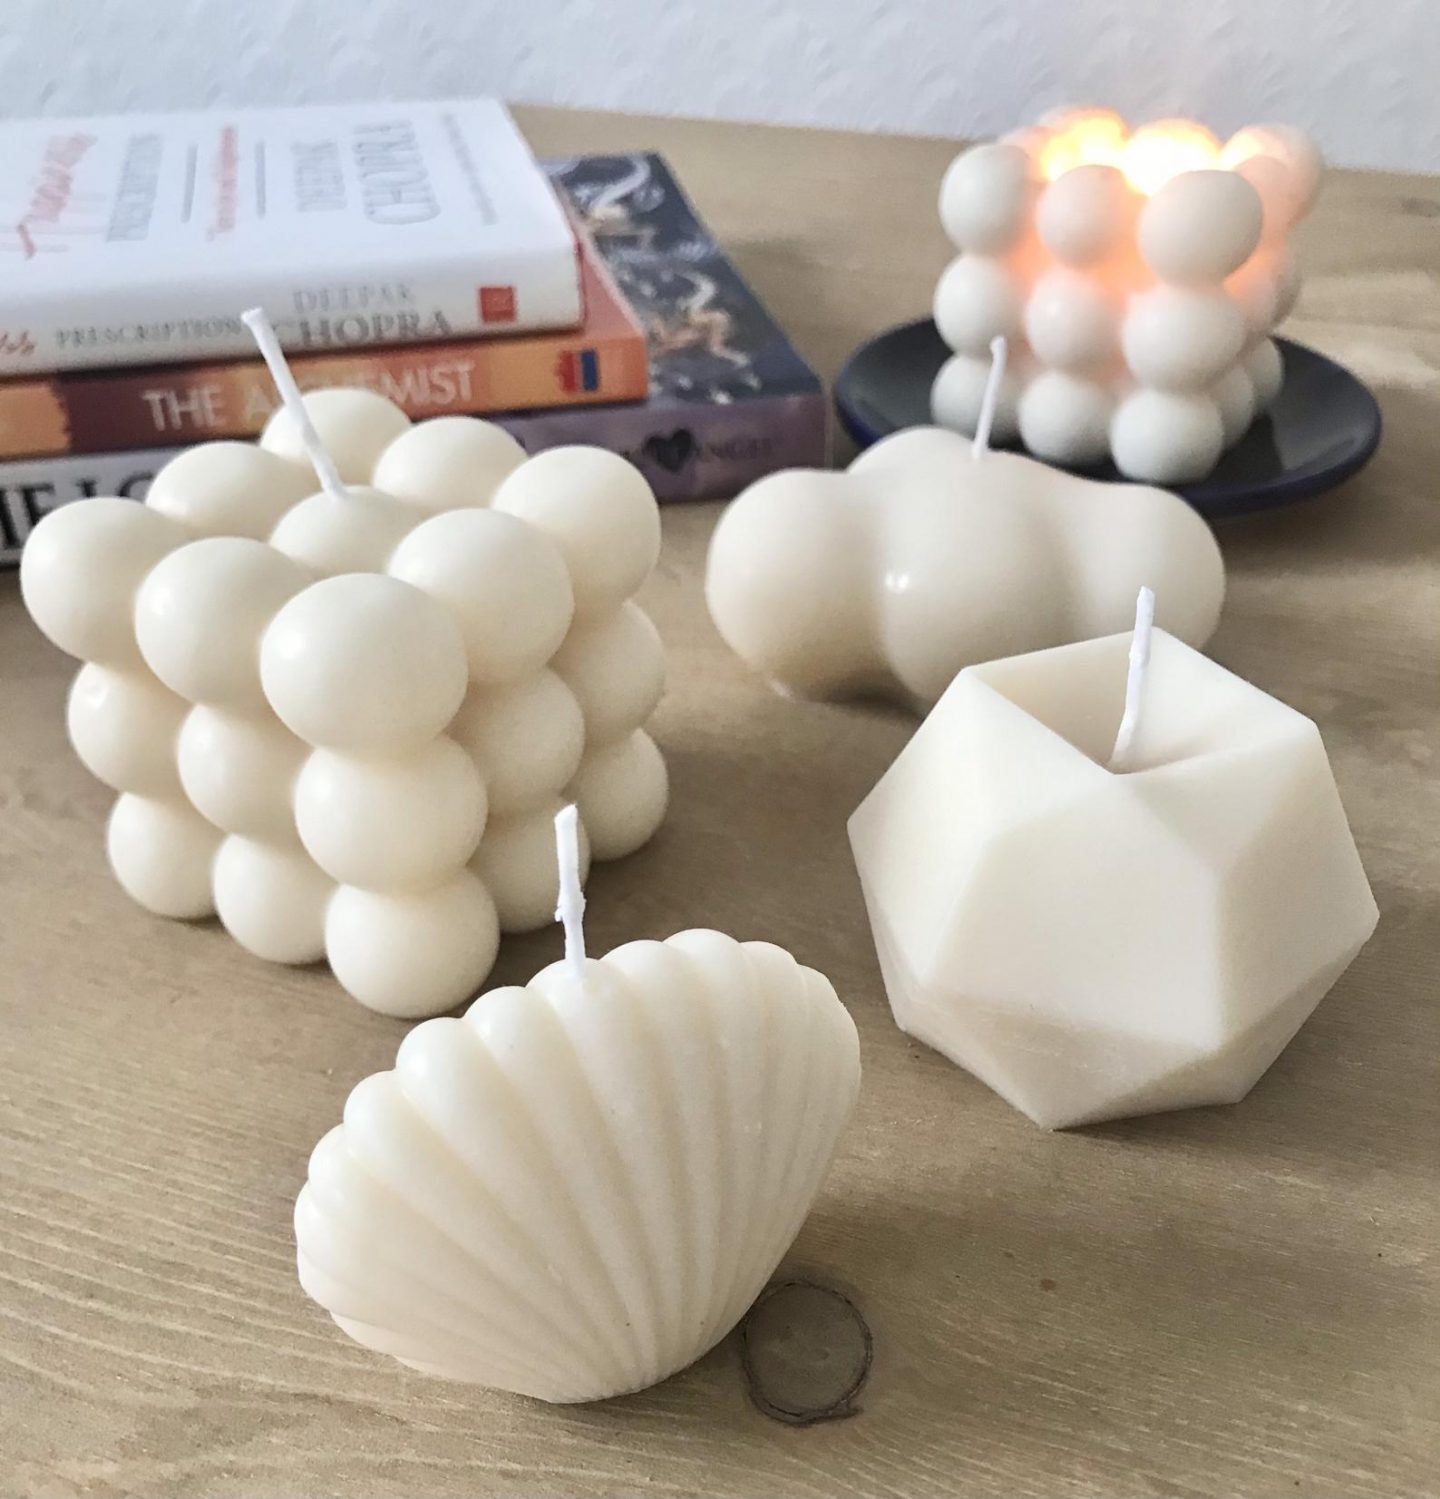 Trendy white sculptural candles in shell, cube, knot and more shapes